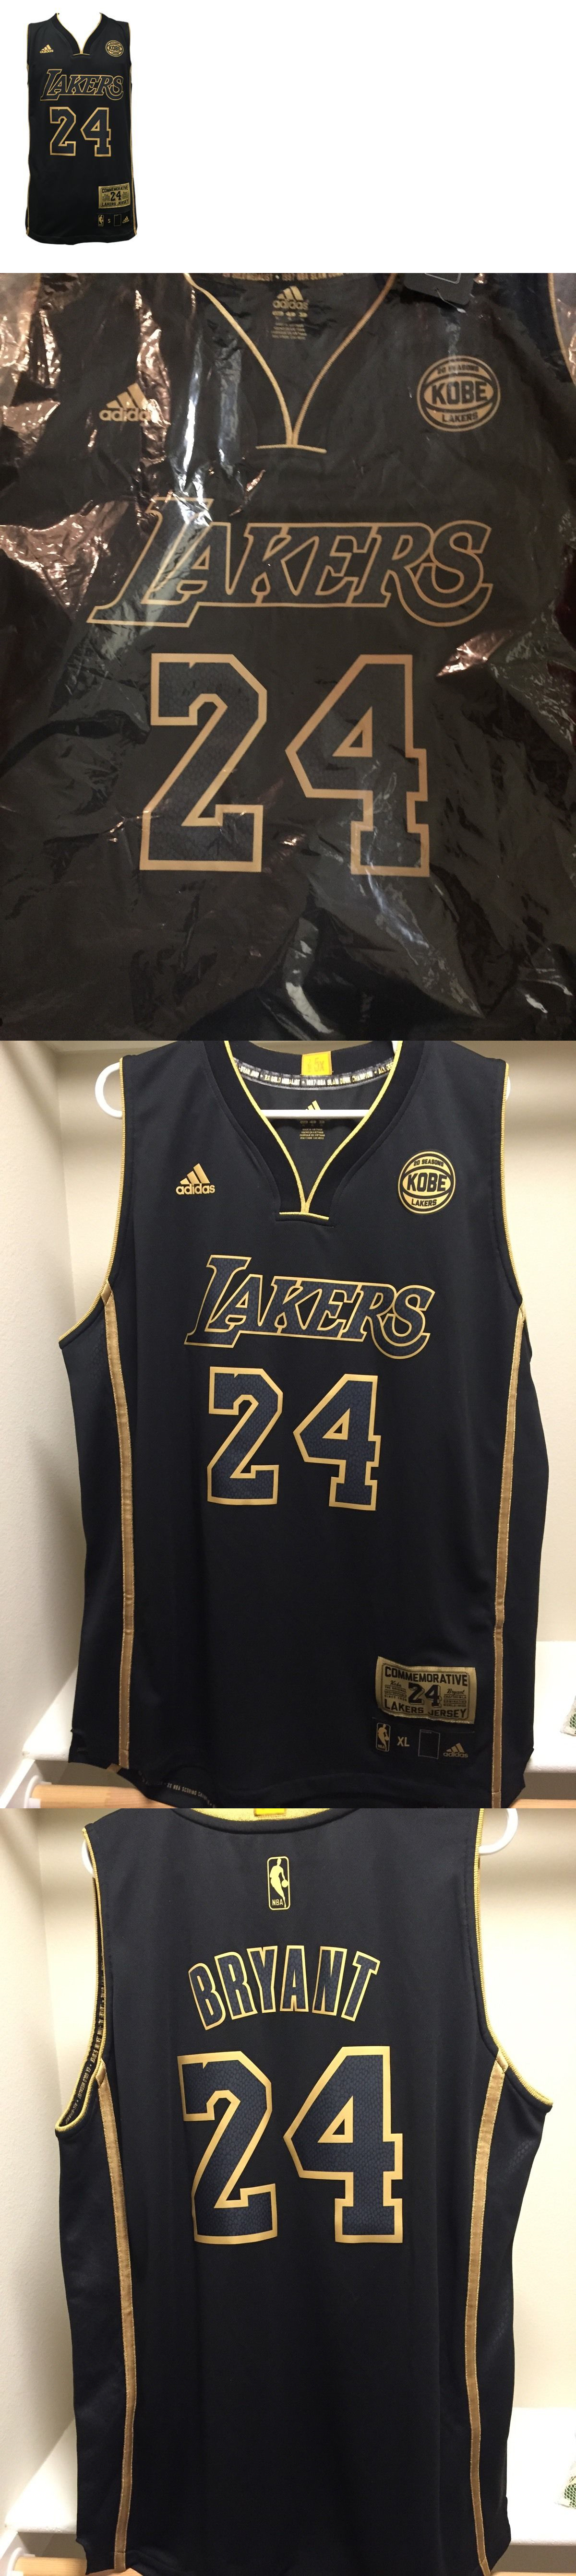 2dab4d195f1 Men 158965  Kobe Bryant Retirement Limited Edition 1 824 Snakeskin Accent  Swingman Jersey Xl -